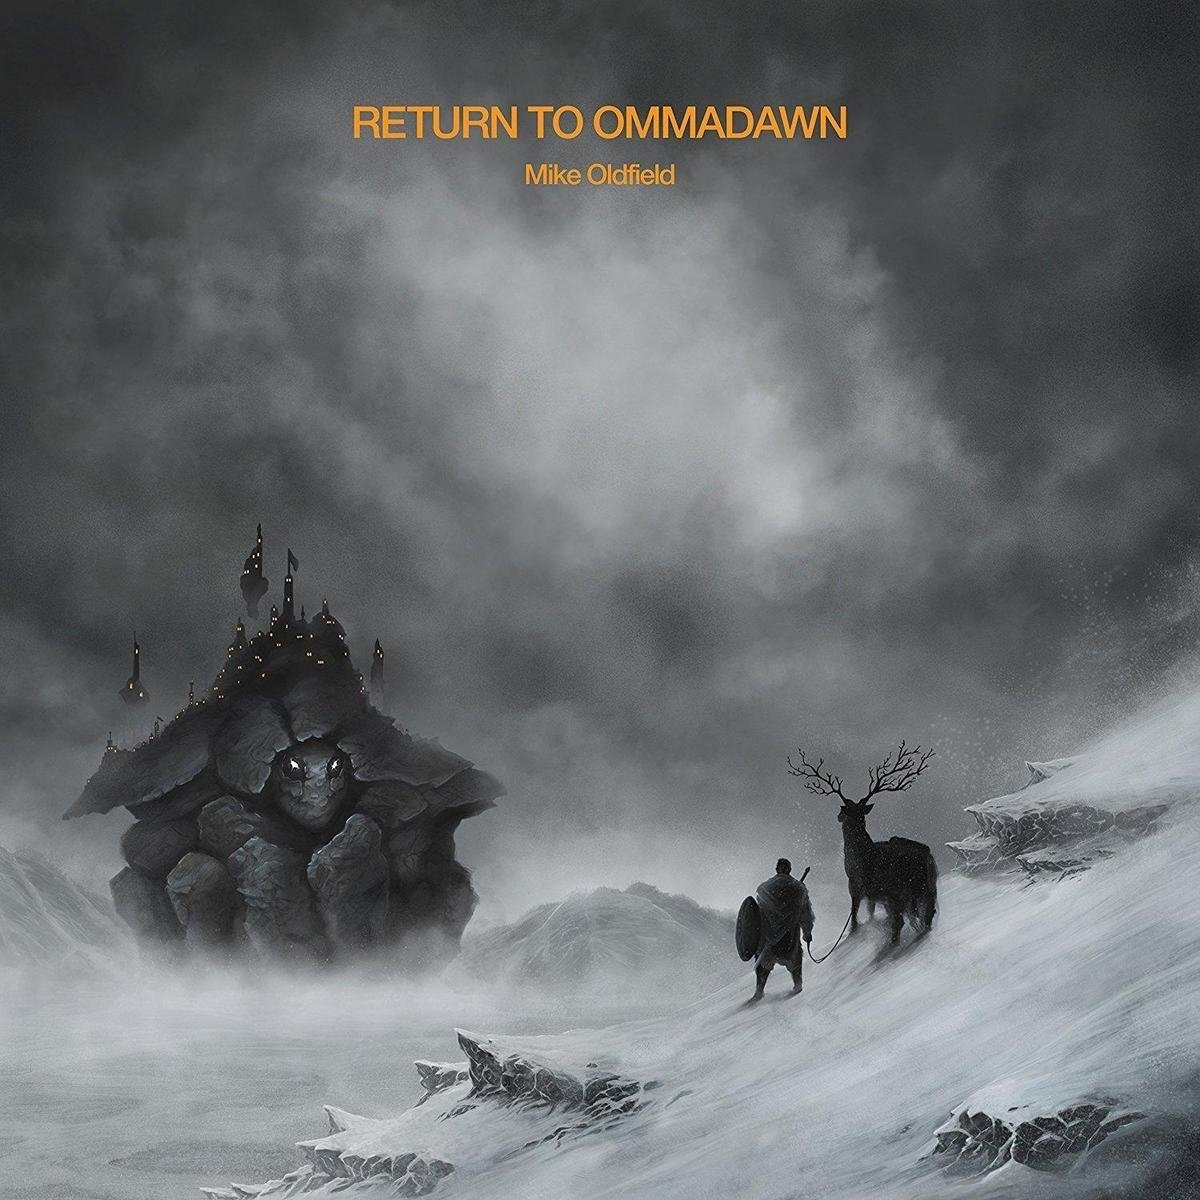 Return to Ommadawn album cover